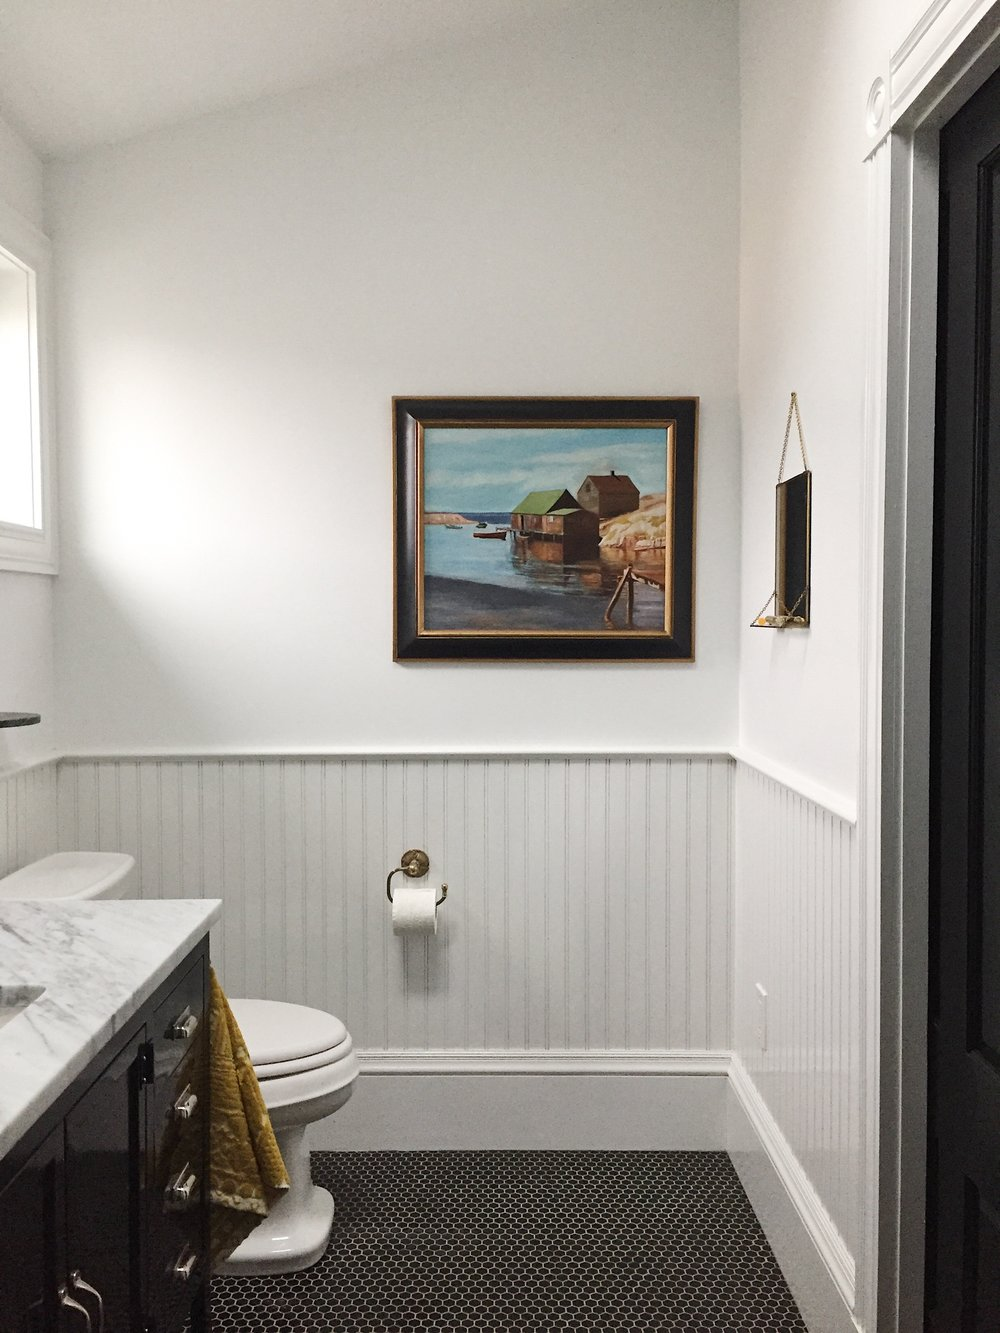 We added a bathroom (life changer!) We used a traditional glossy, black hex tile floor, wood wainscot + white subway tile in the shower. The artwork was painted by my late grandfather.